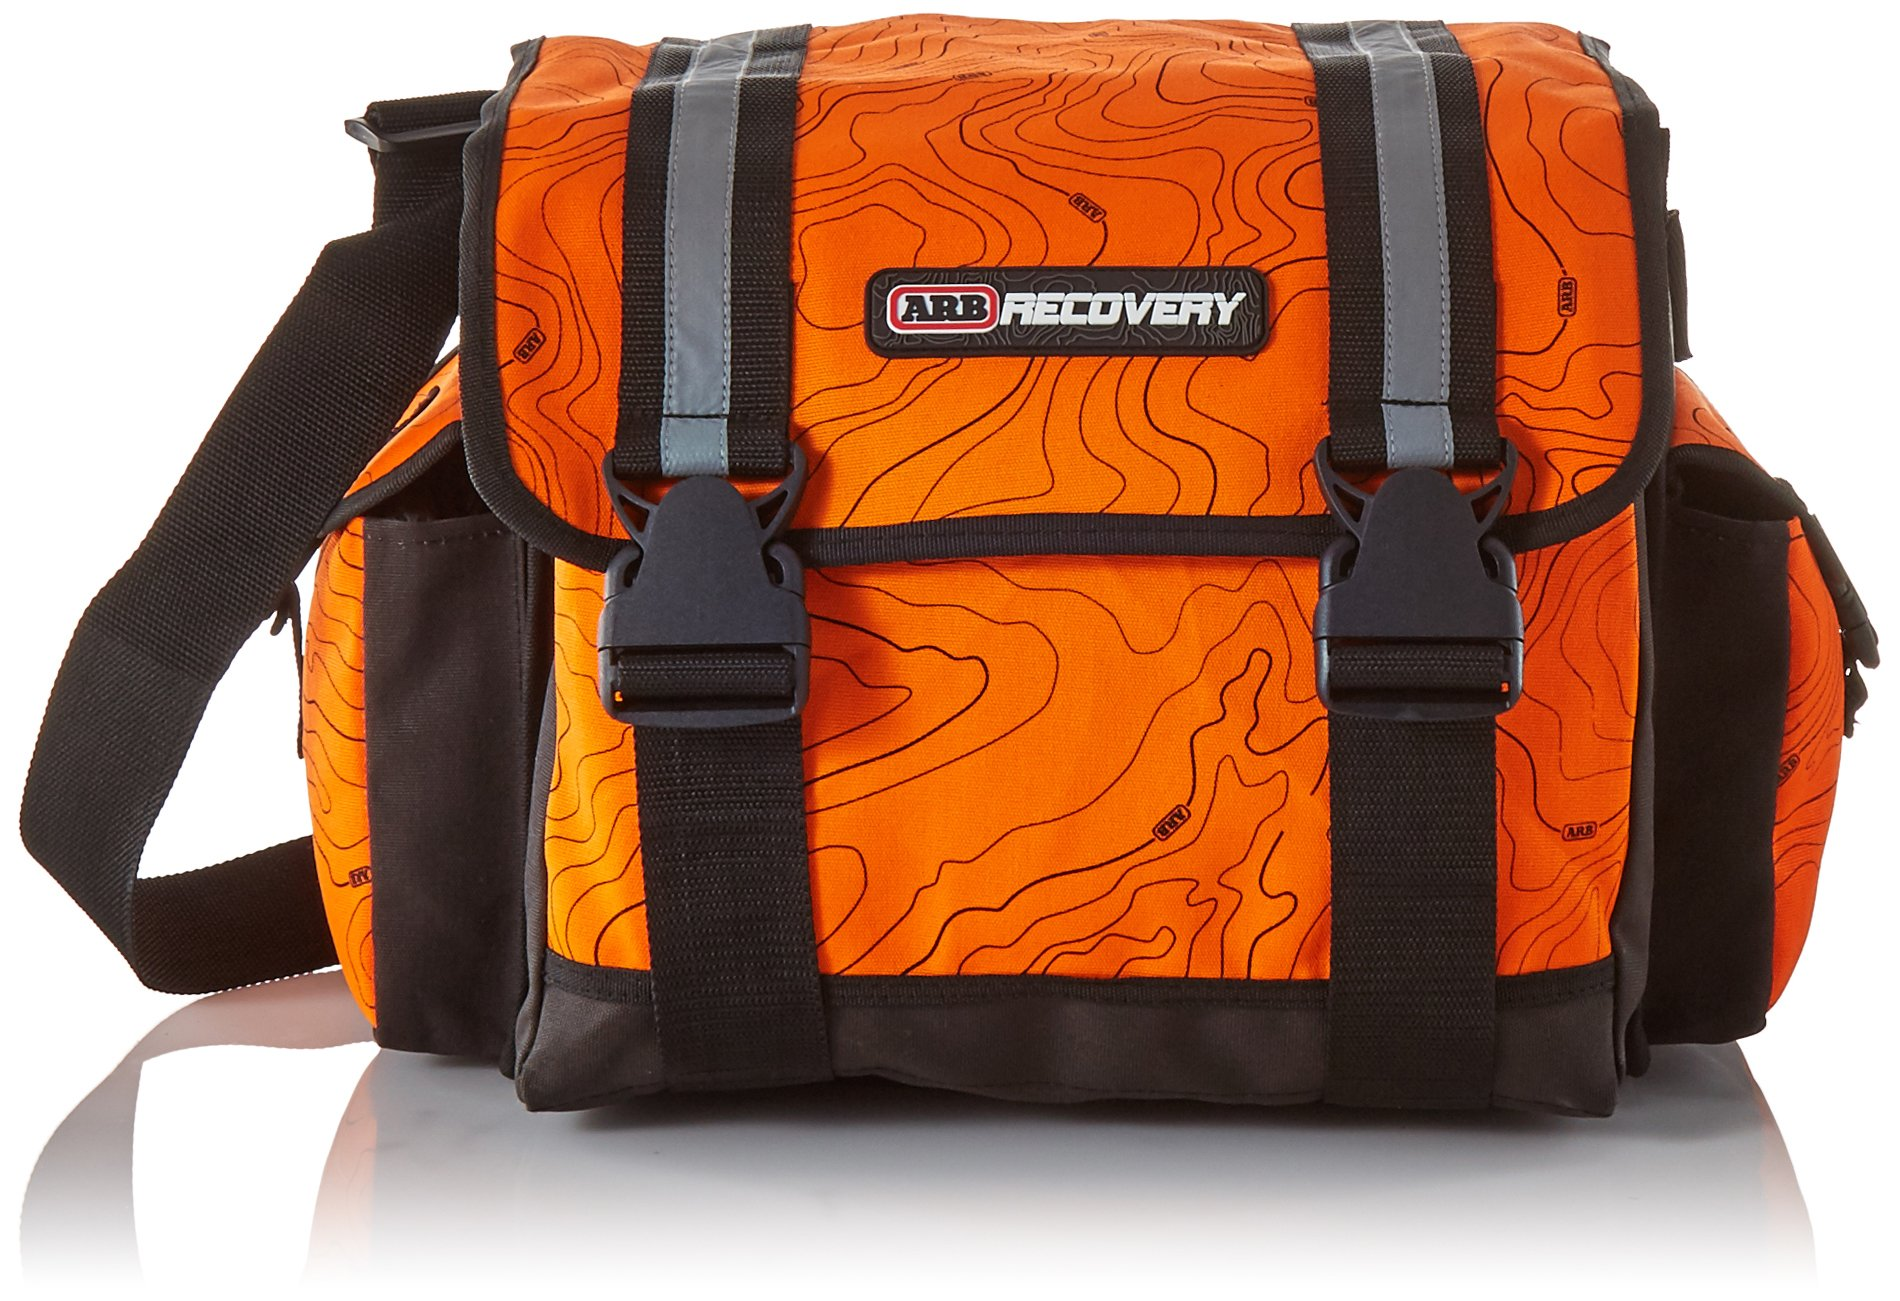 ARB ARB501 Orange Large Recovery Bag